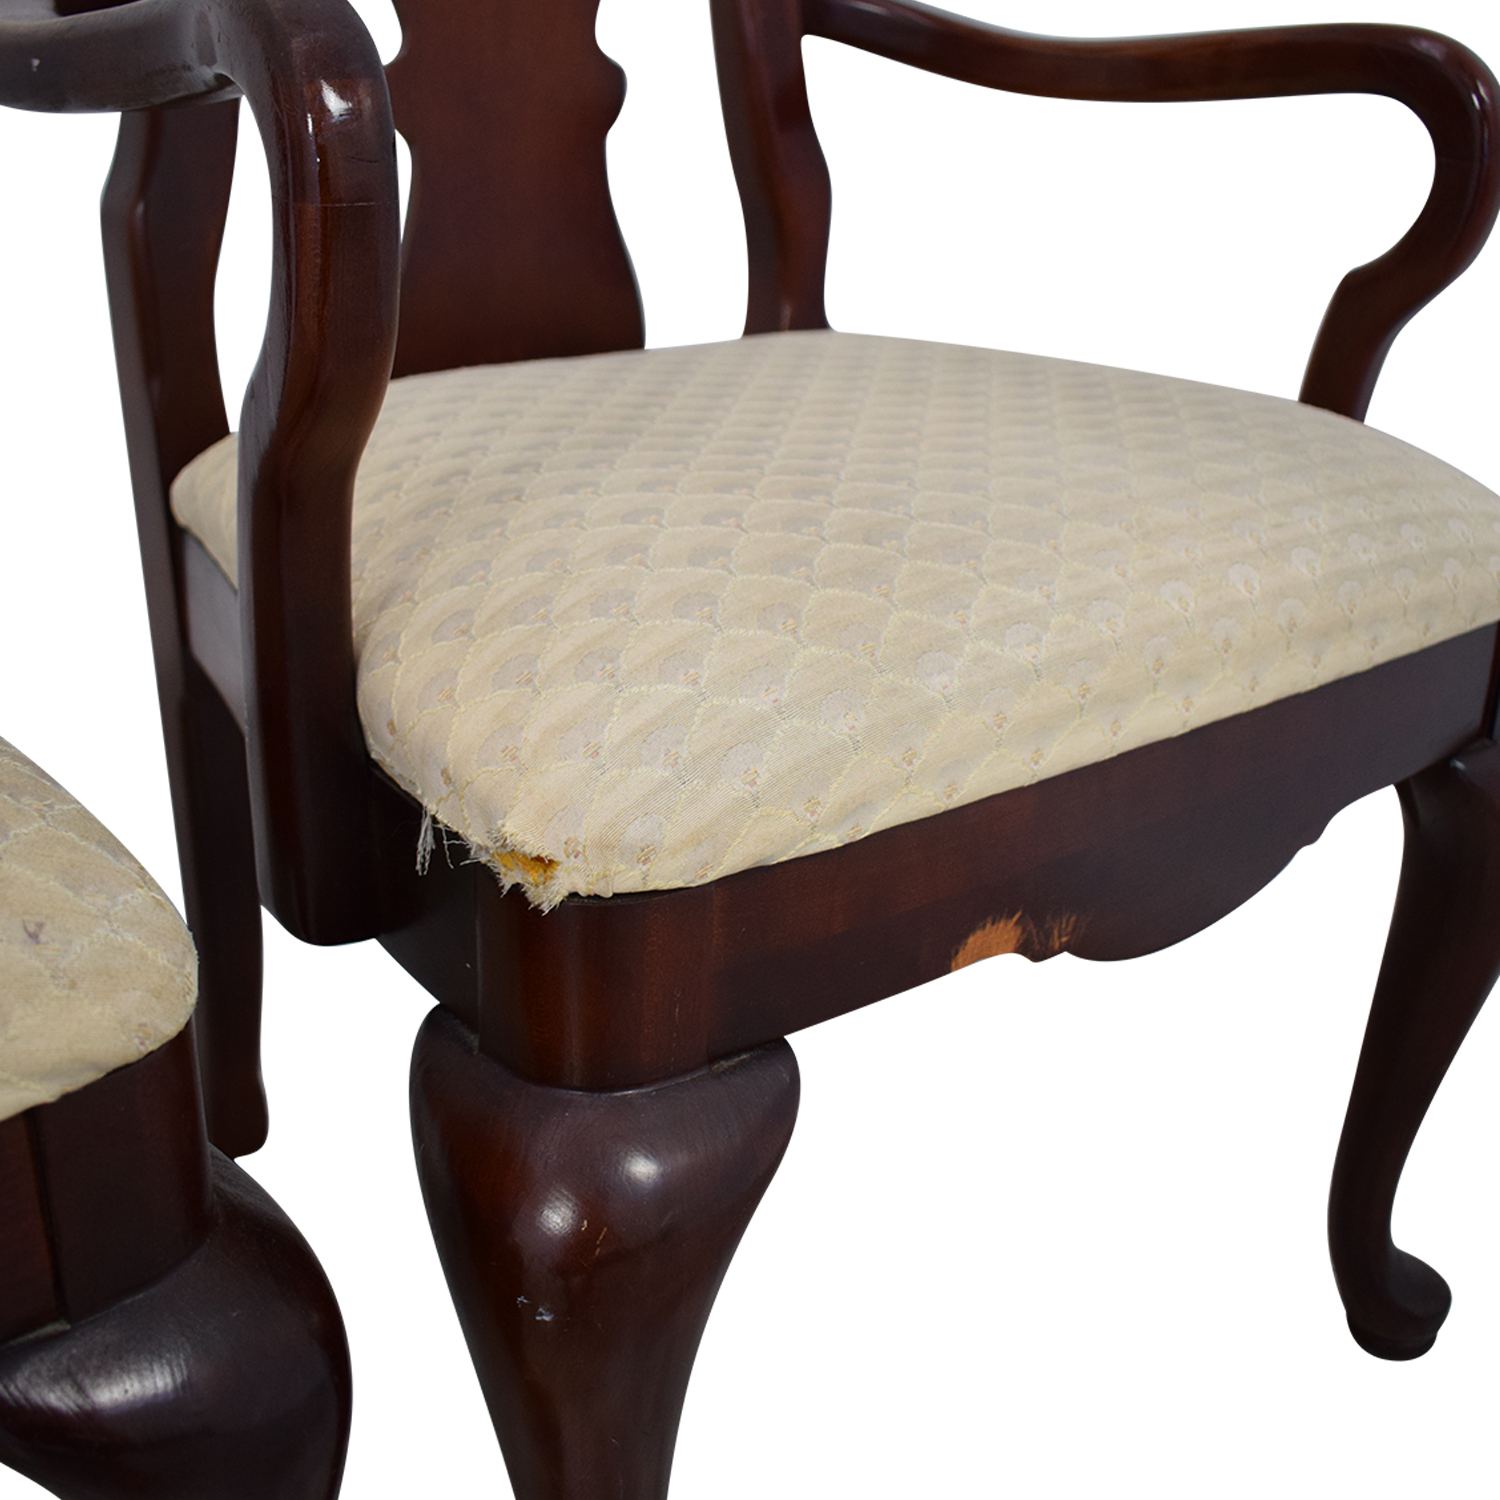 Thomasville Thomasville Traditional Queen Anne Style Dining Chairs used